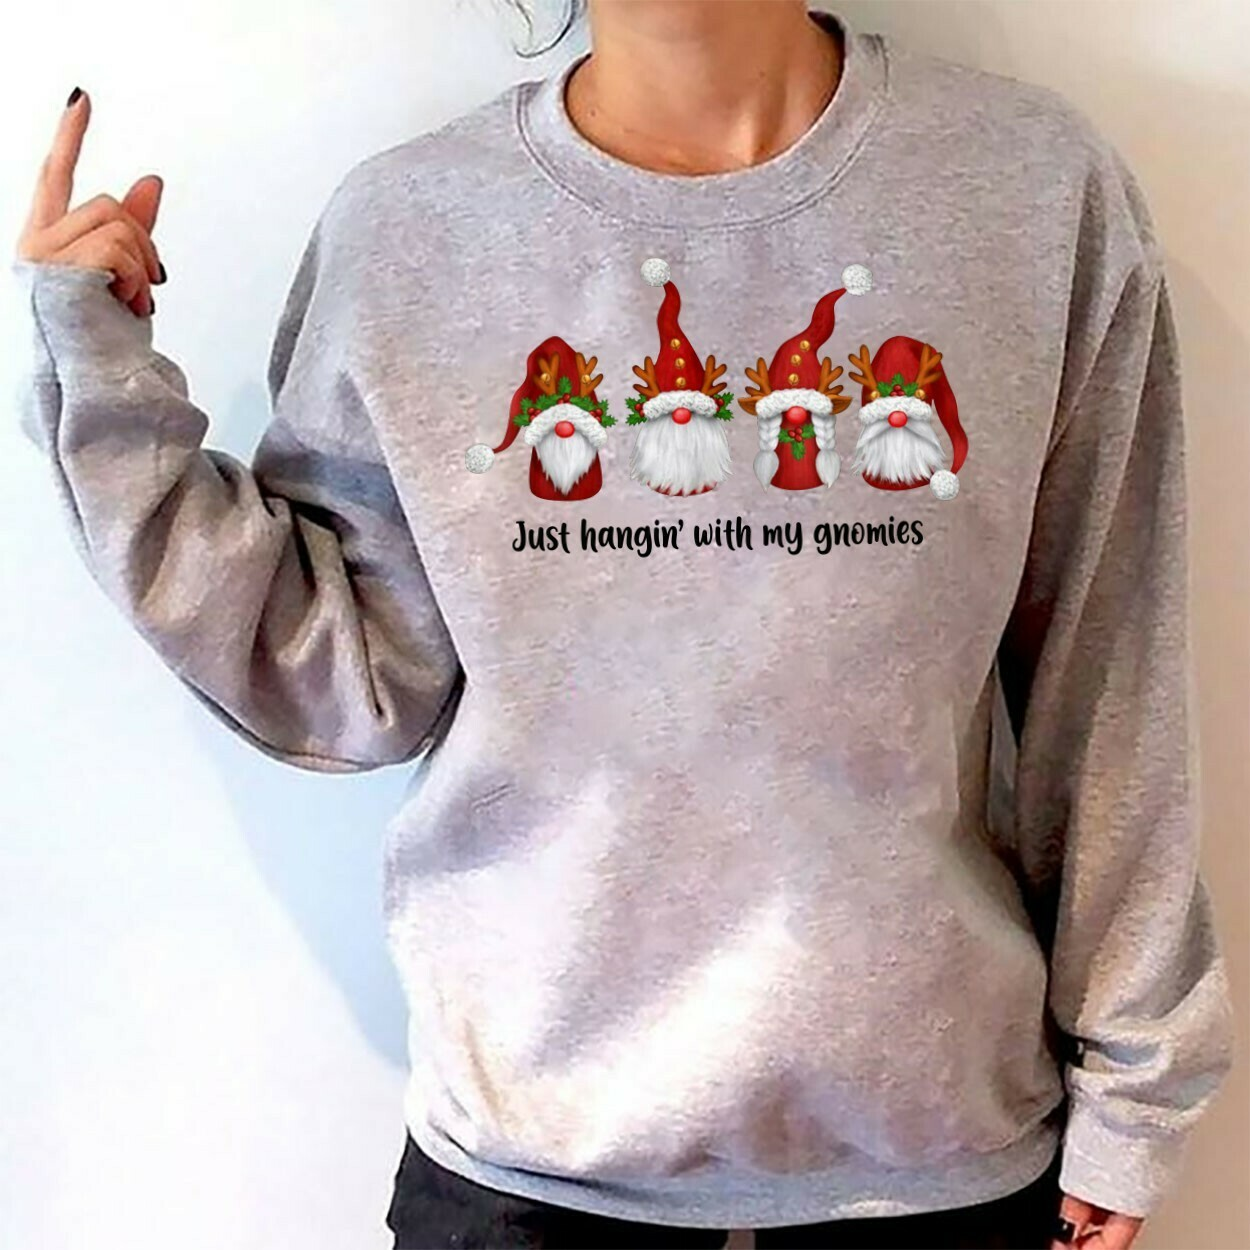 Just Hangin' With My Gnomies Funny Christmas Dwarf Gift T-Shirt,Gnomes Holiday Tee,Adult Christmas,Gnome Christmas tee,Gnome elf shirt Long Sleeve Sweatshirt Hoodie Jolly Family Gifts